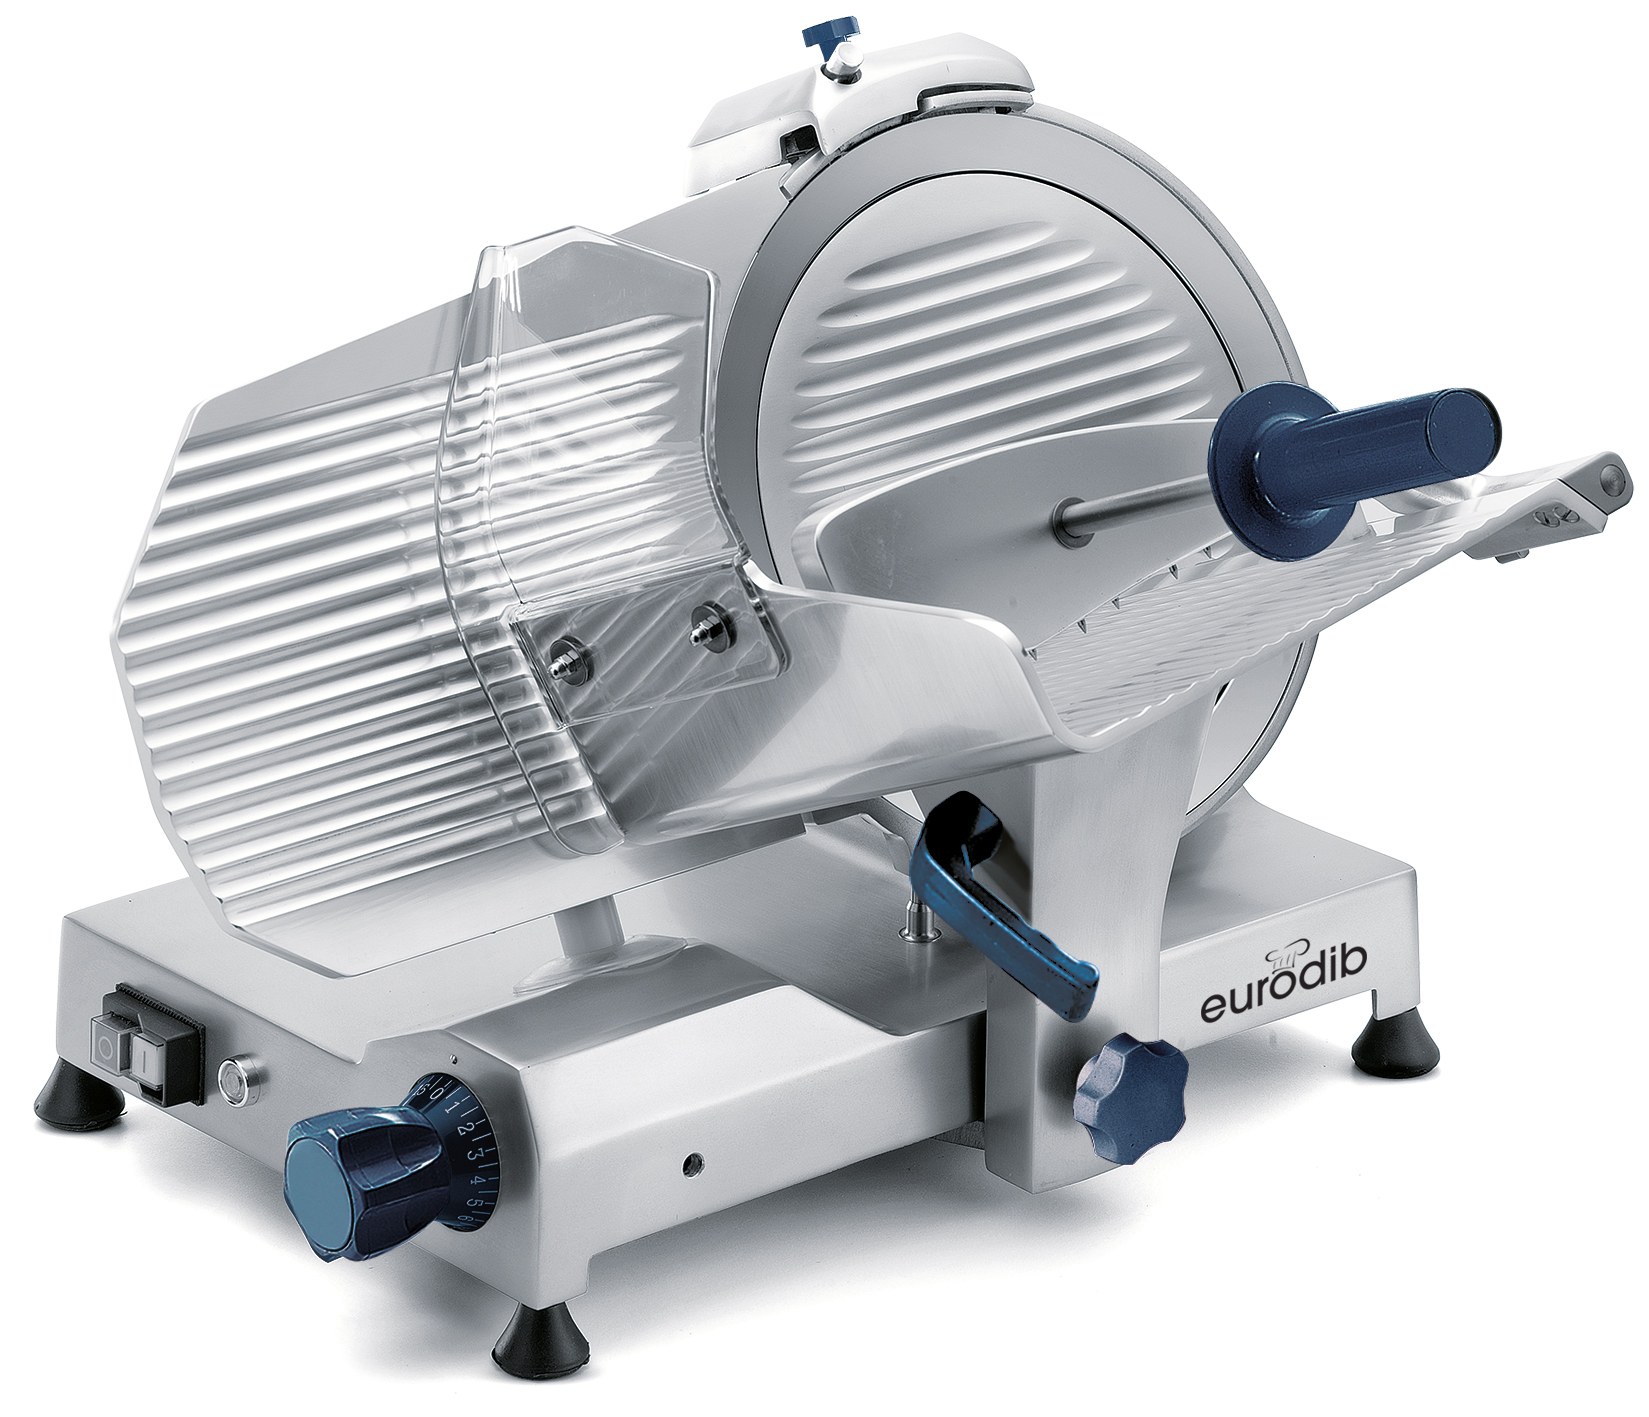 Eurodib USA MIRRA300P 110 meat slicers